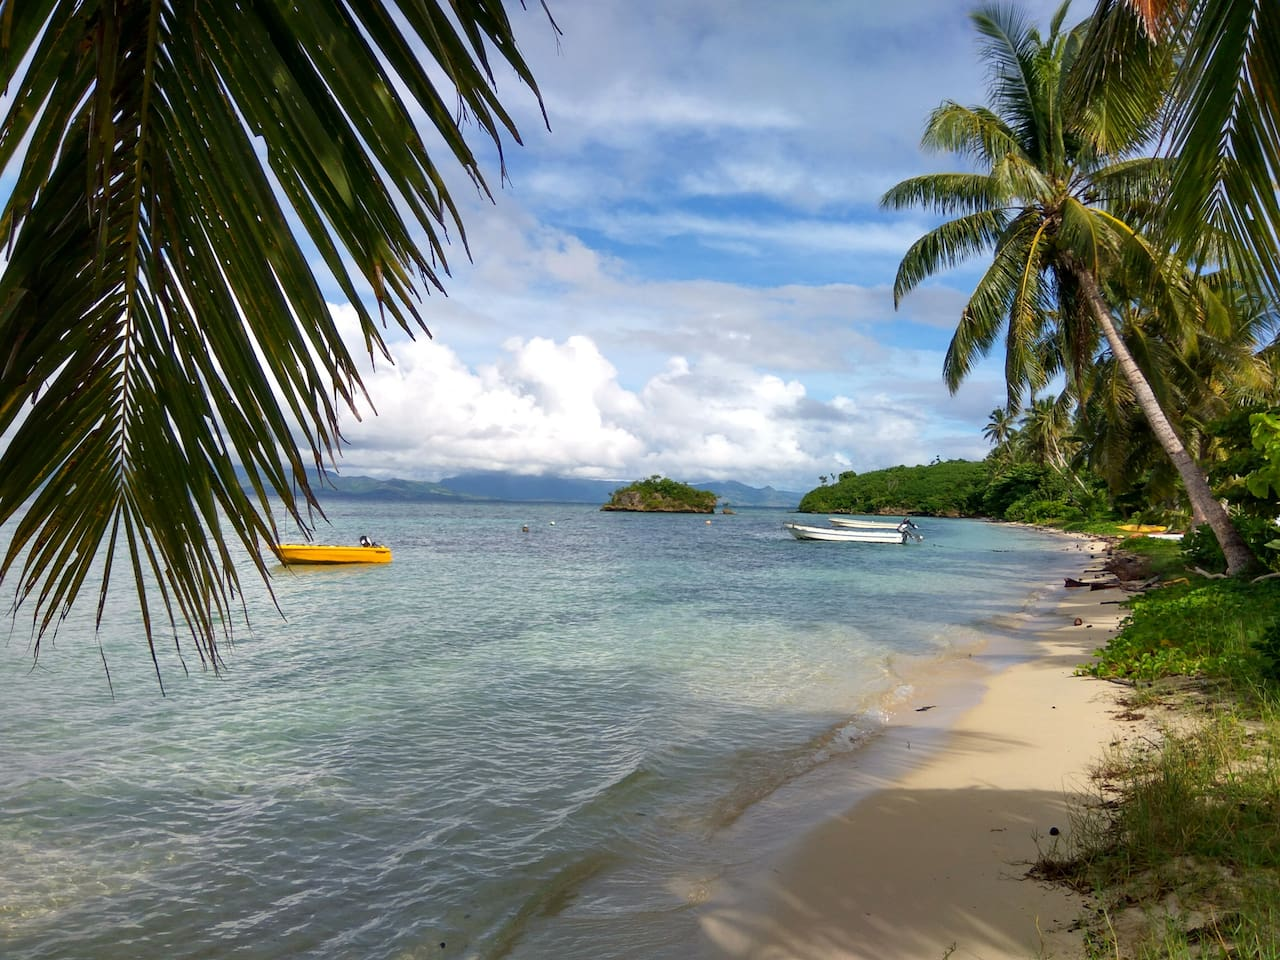 Naigani village beach where you will arrive and be welcomed